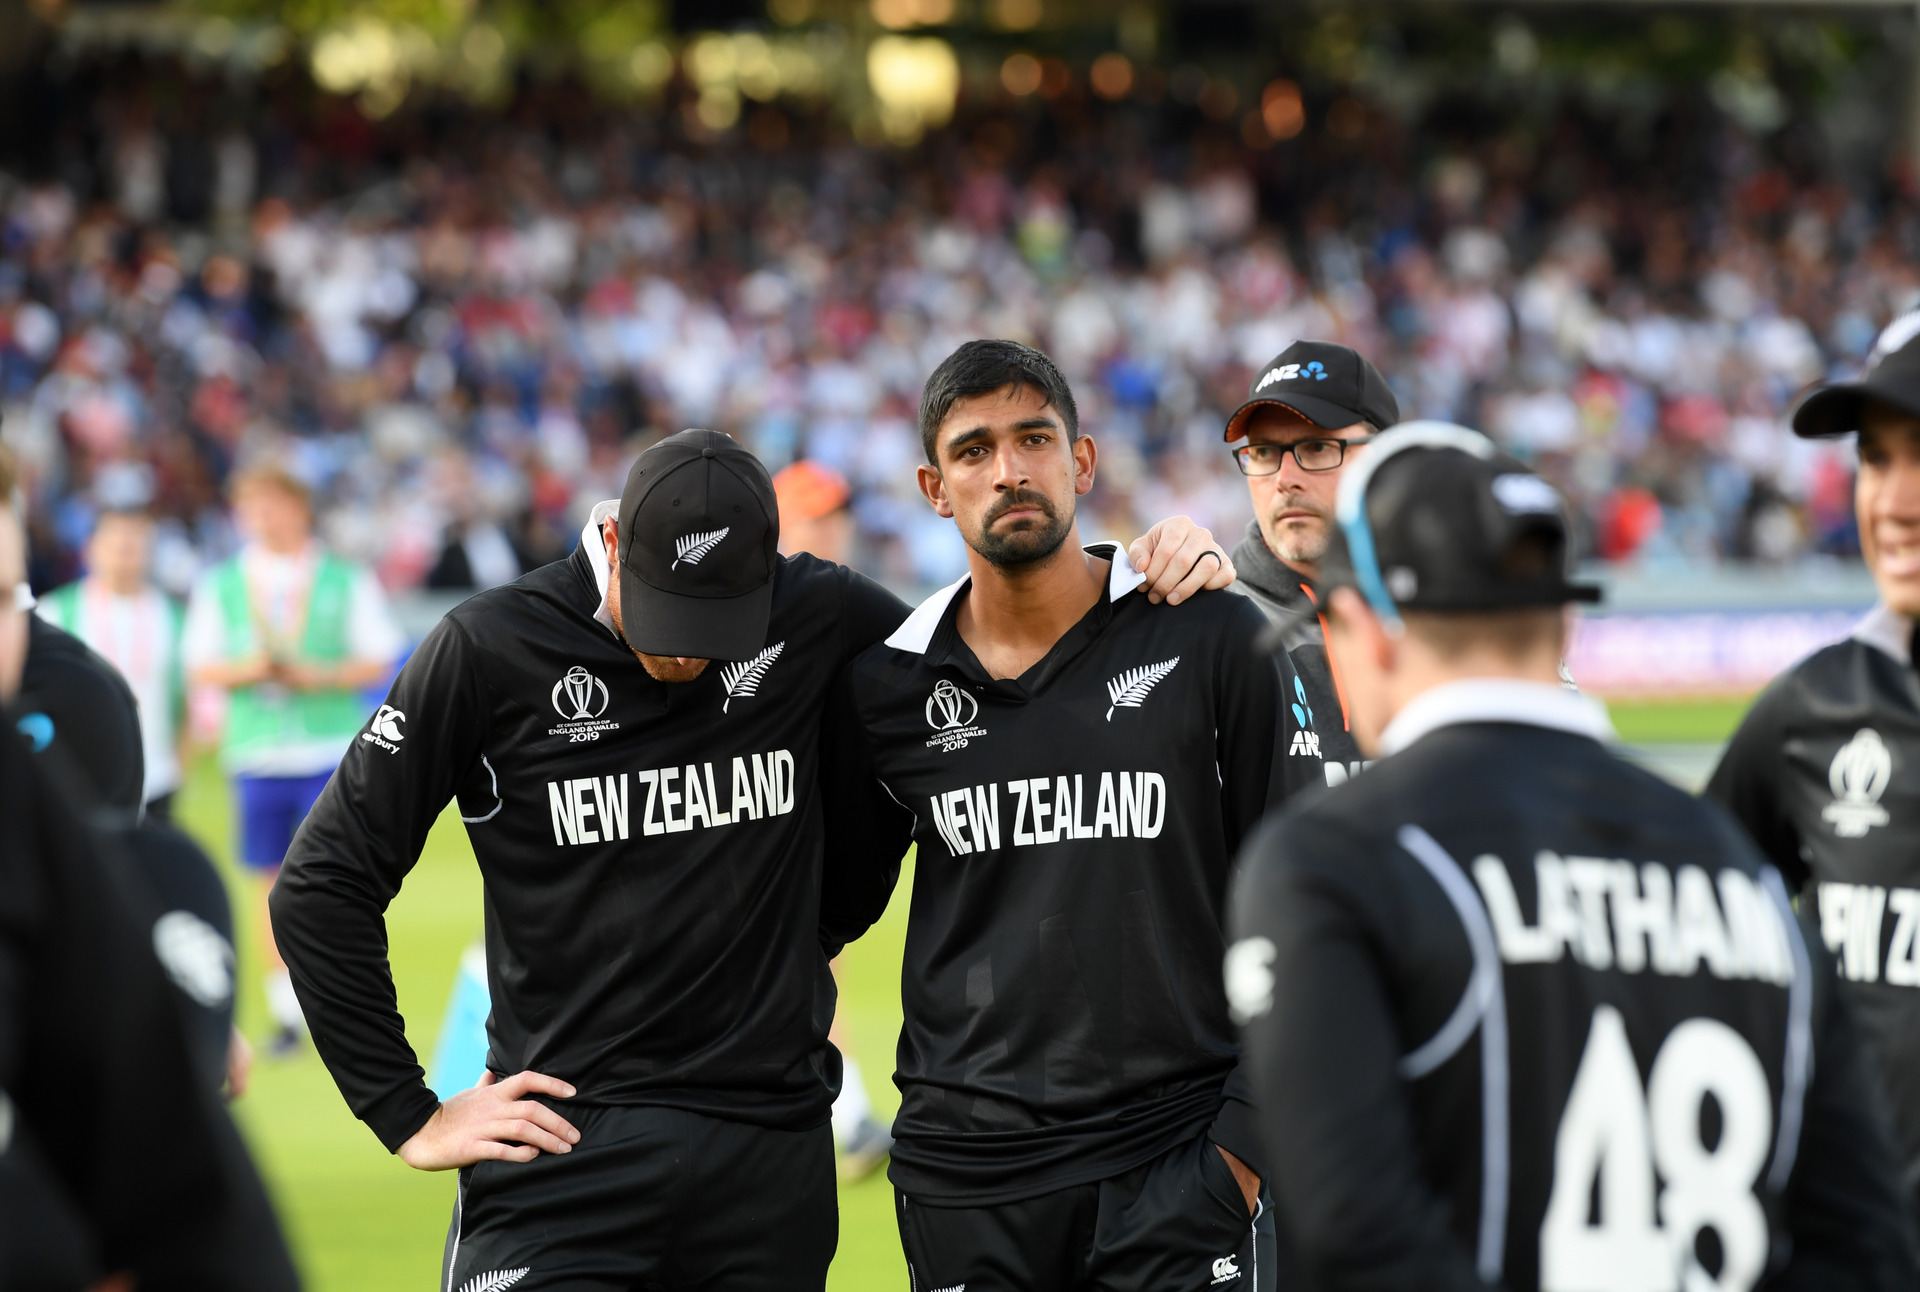 New Zealand's most heartbreaking sporting defeats: Where does Black Caps 2019 Cricket World Cup final loss rank?